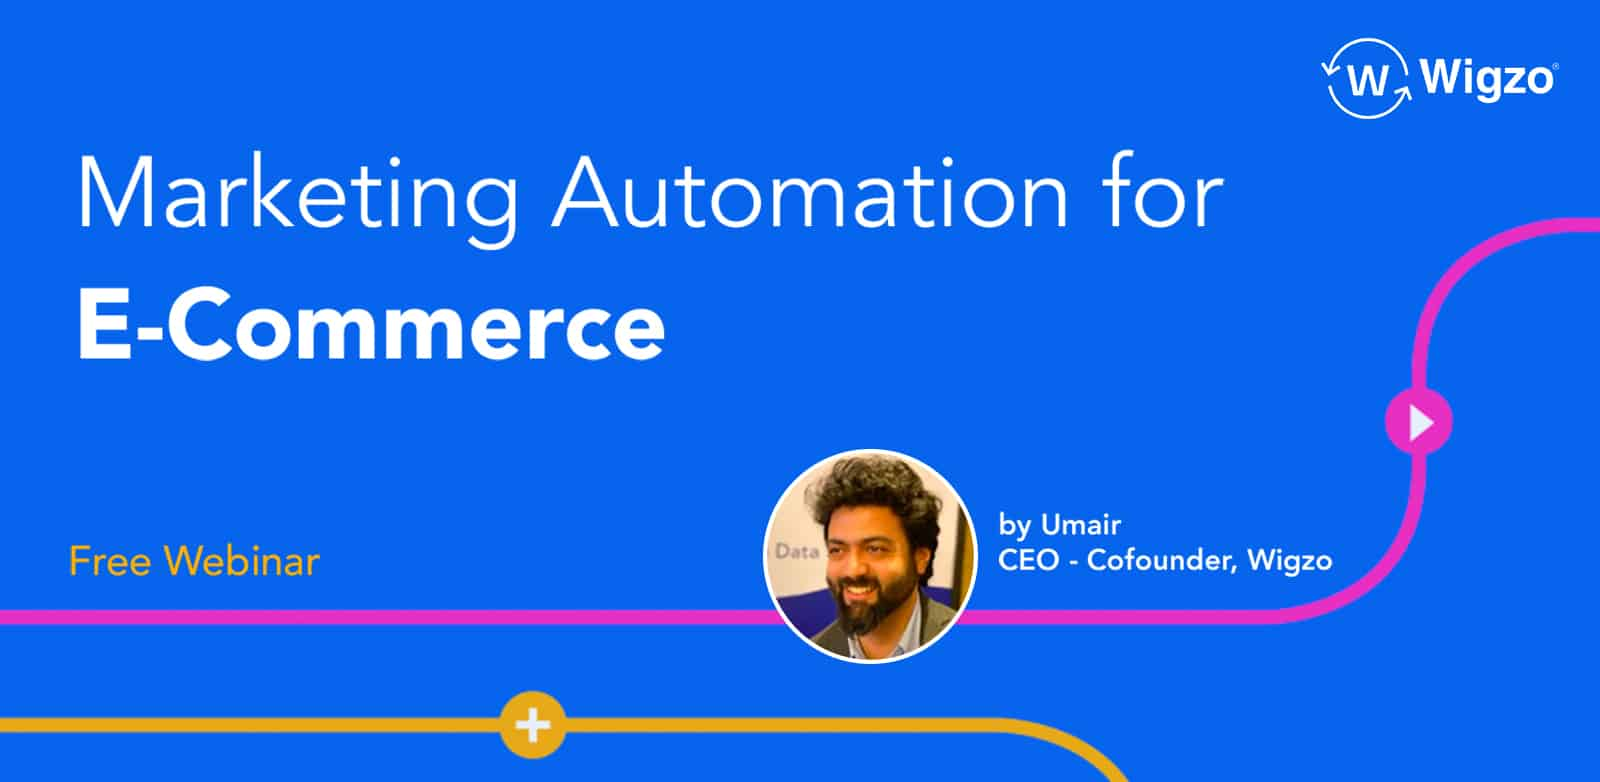 Live Webinar on Marketing Automation for Ecommerce